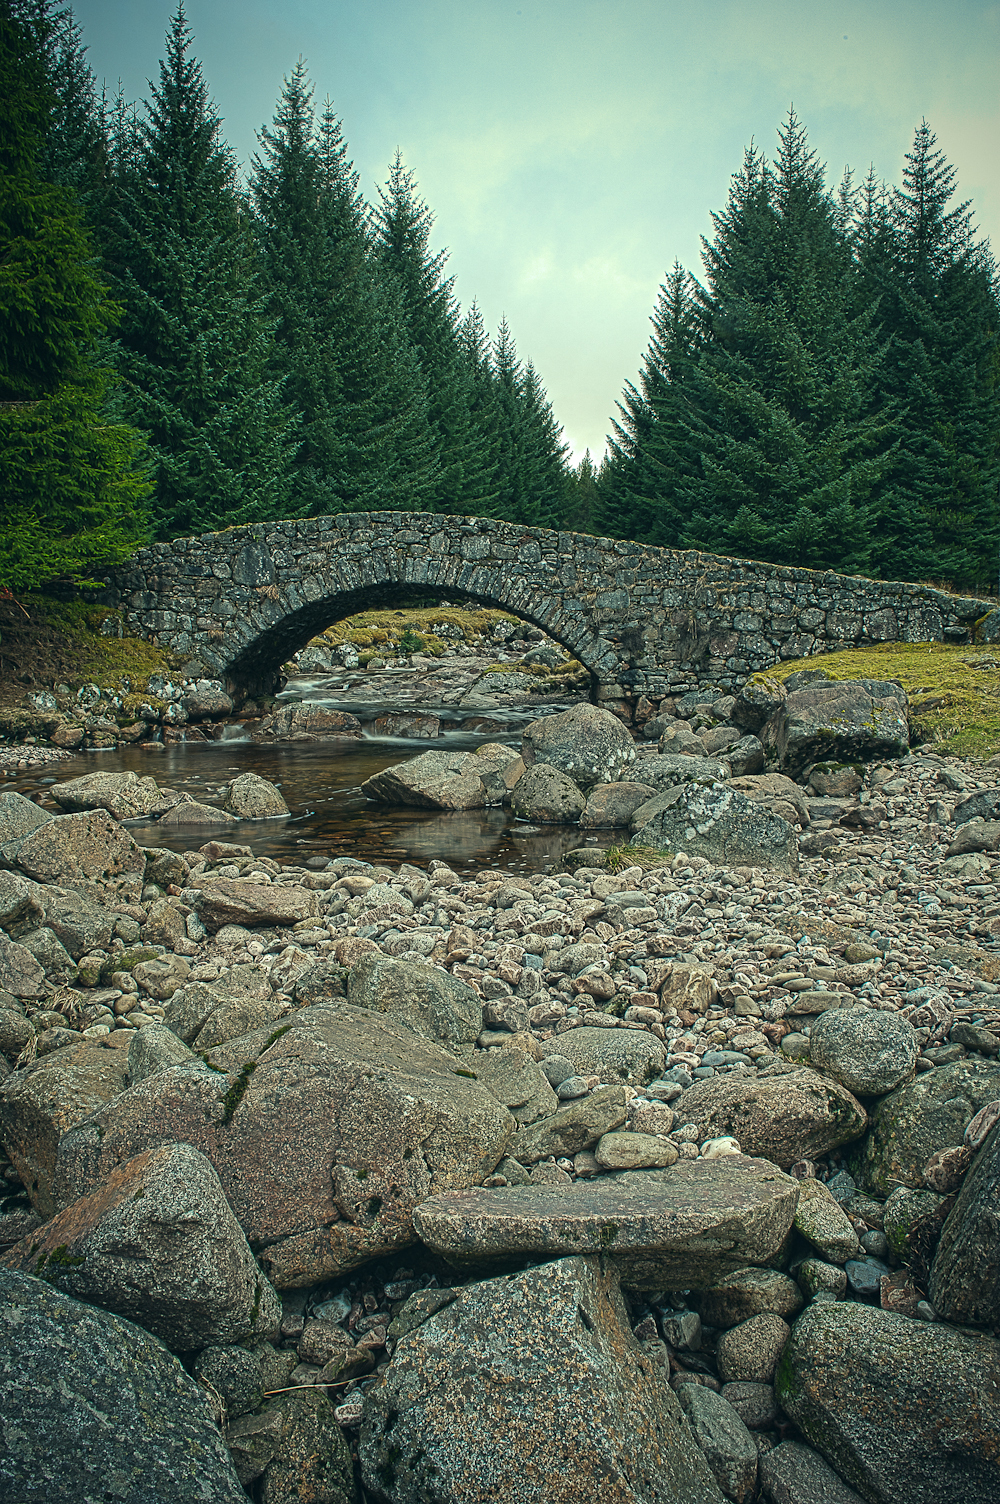 Military bridge at Melgarve